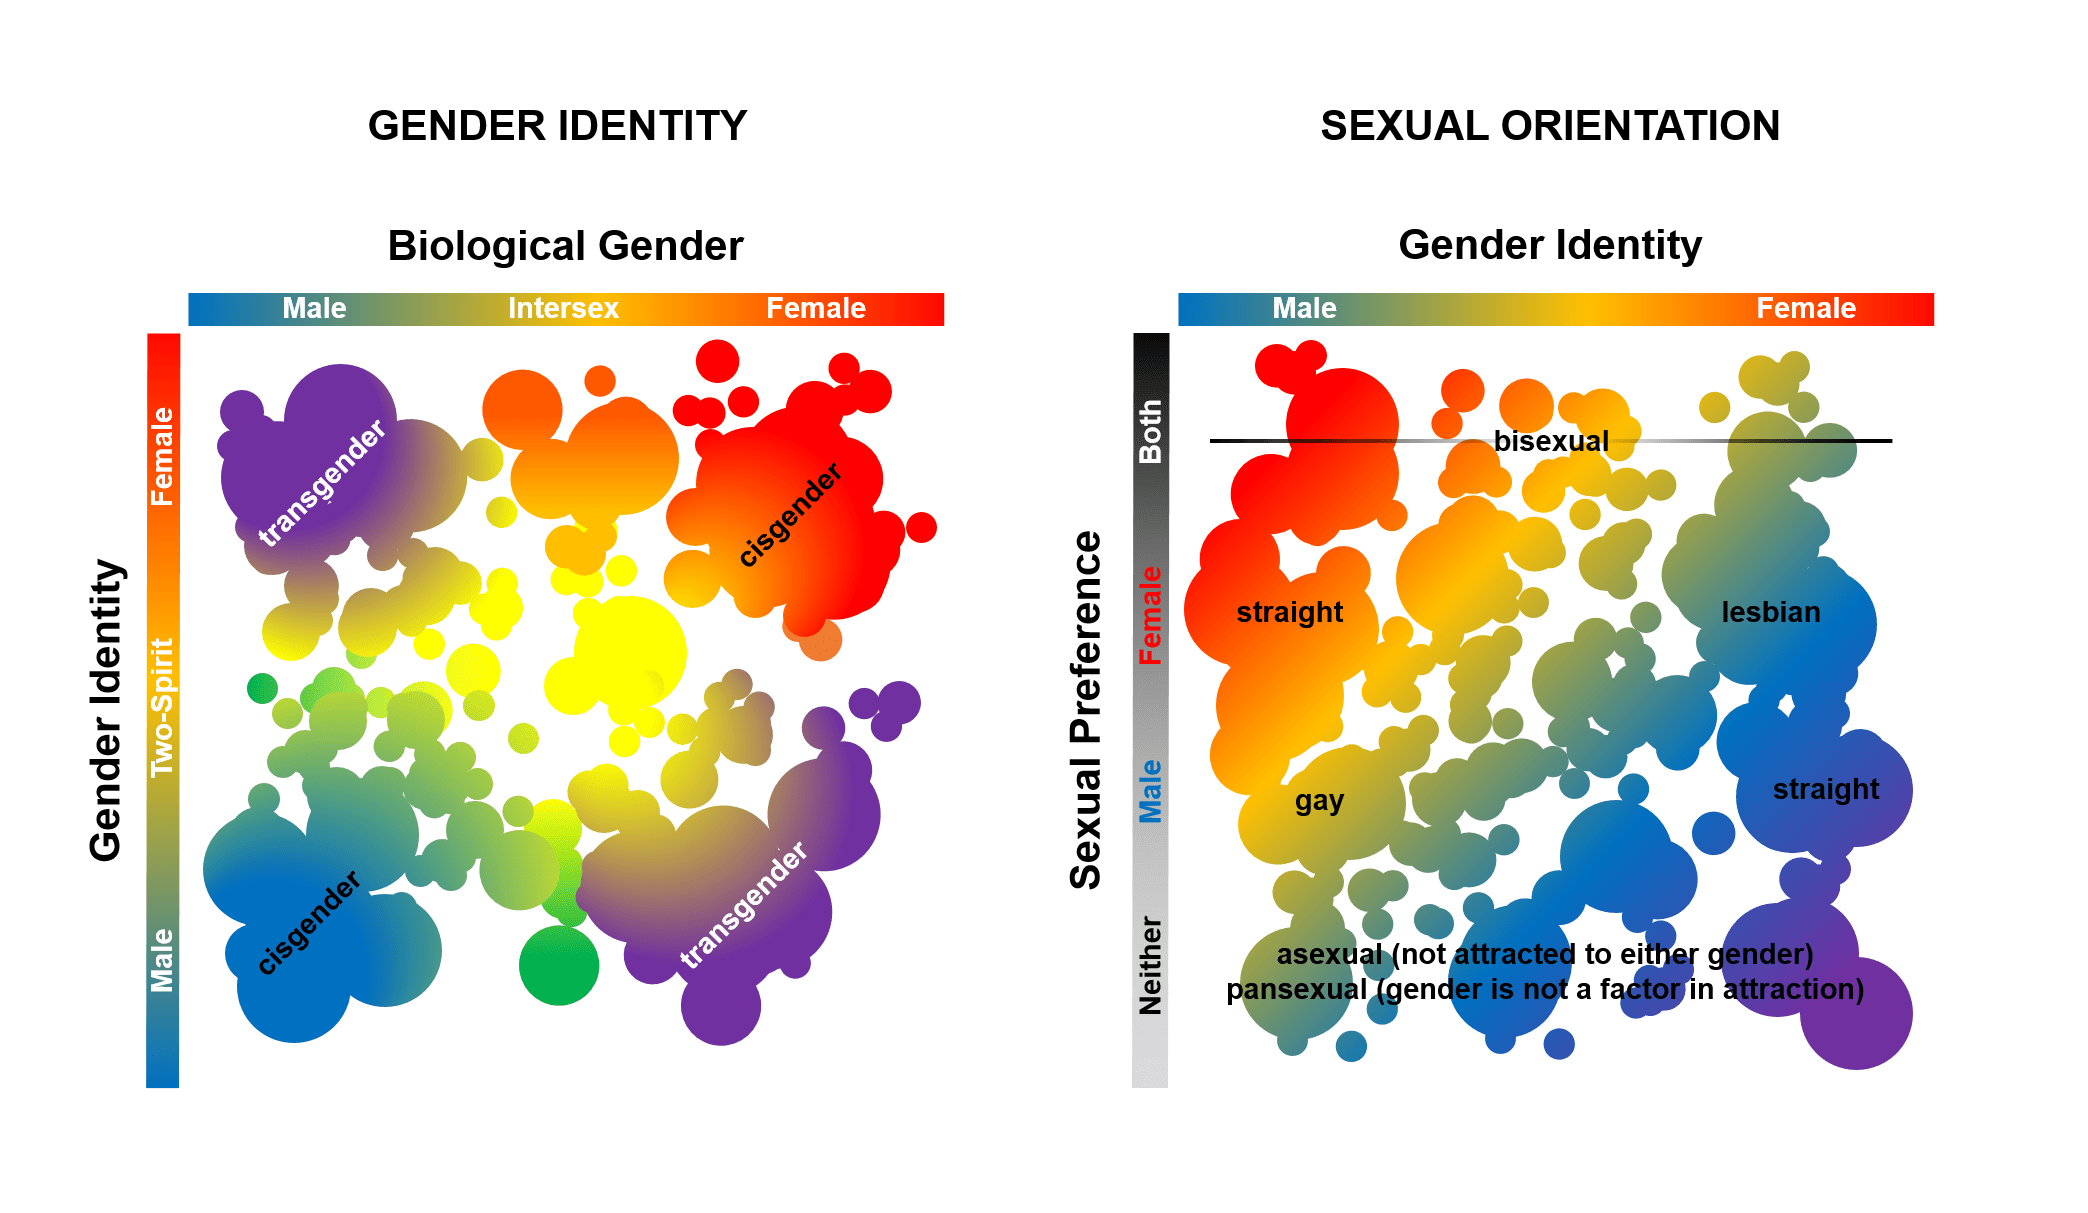 Sexual orientation can change in weather